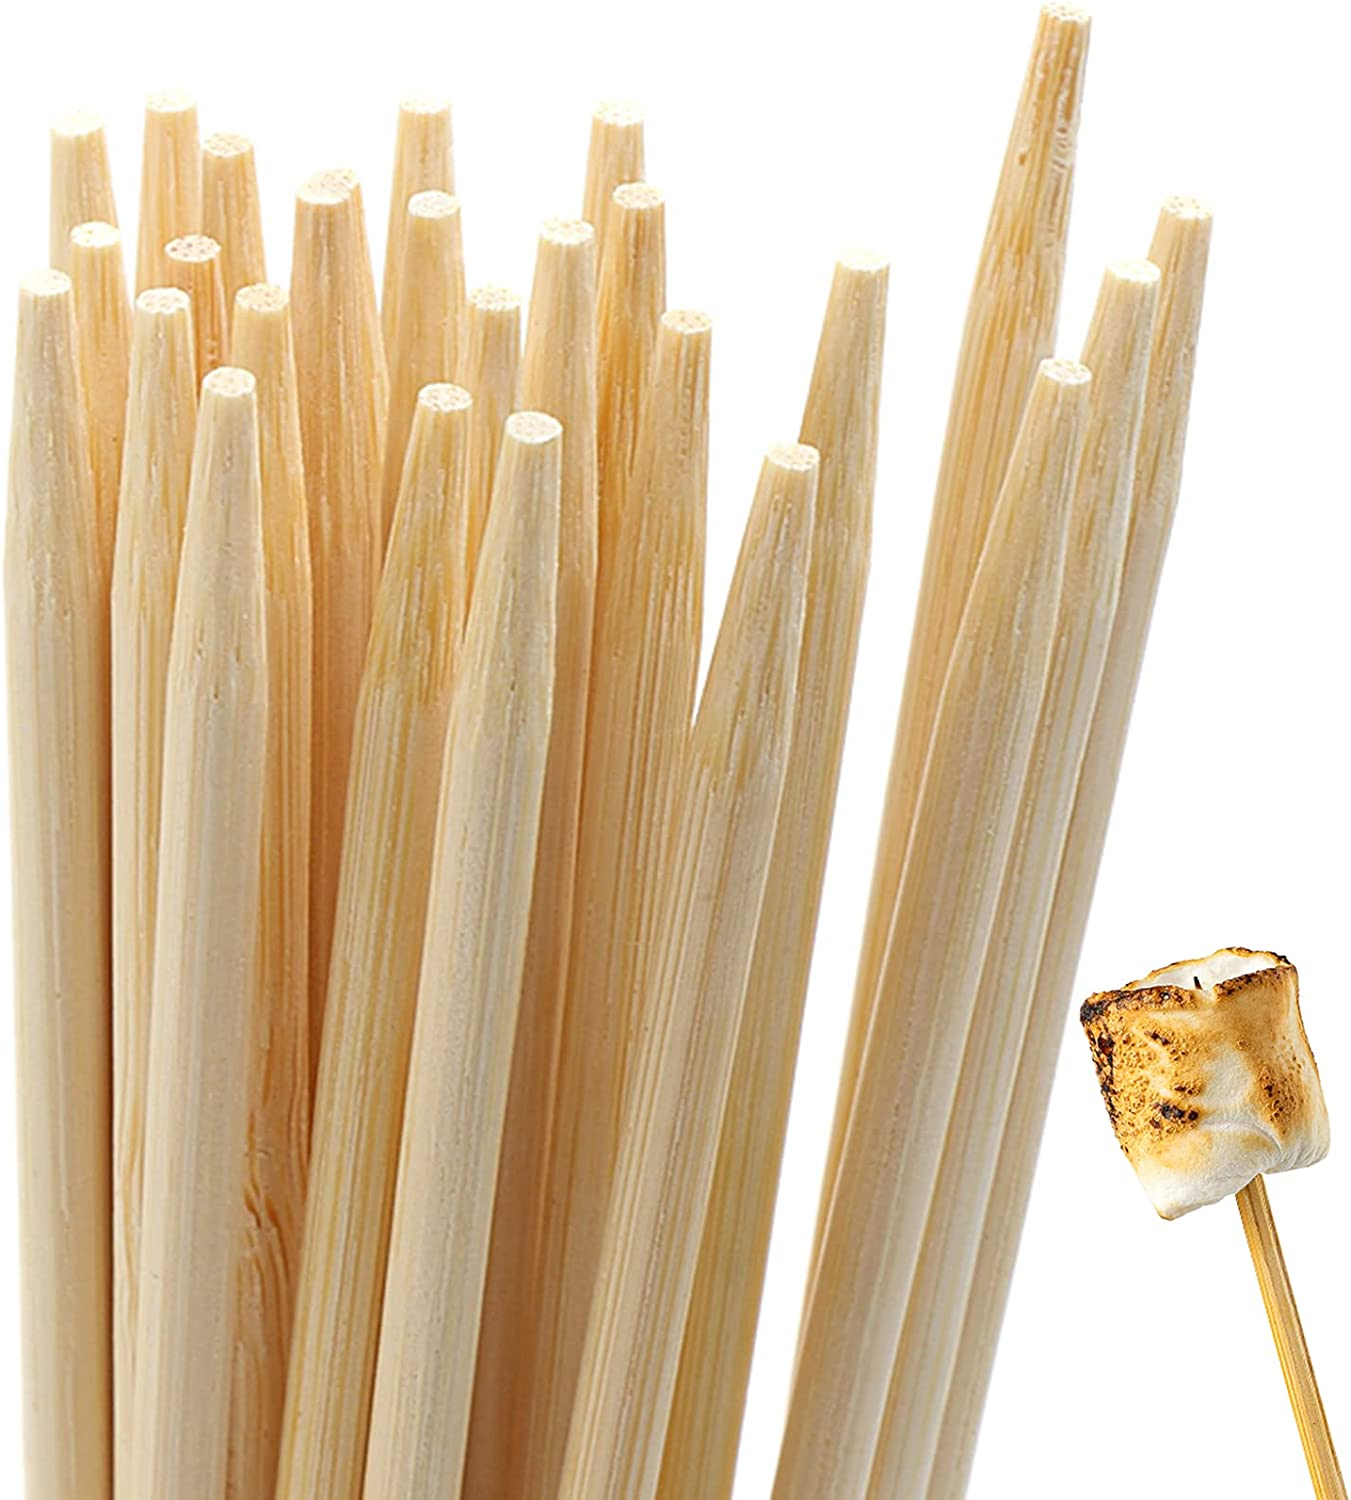 BLUE TOP Bamboo Marshmallow Roasting Sticks with 30 Inch 5mm Thick 60 PCS Extra Long Heavy Duty,Wooden Skewer BBQ Hot Dog Skewer,Great for Camping,Parties,Weddings and Plant Stakes.